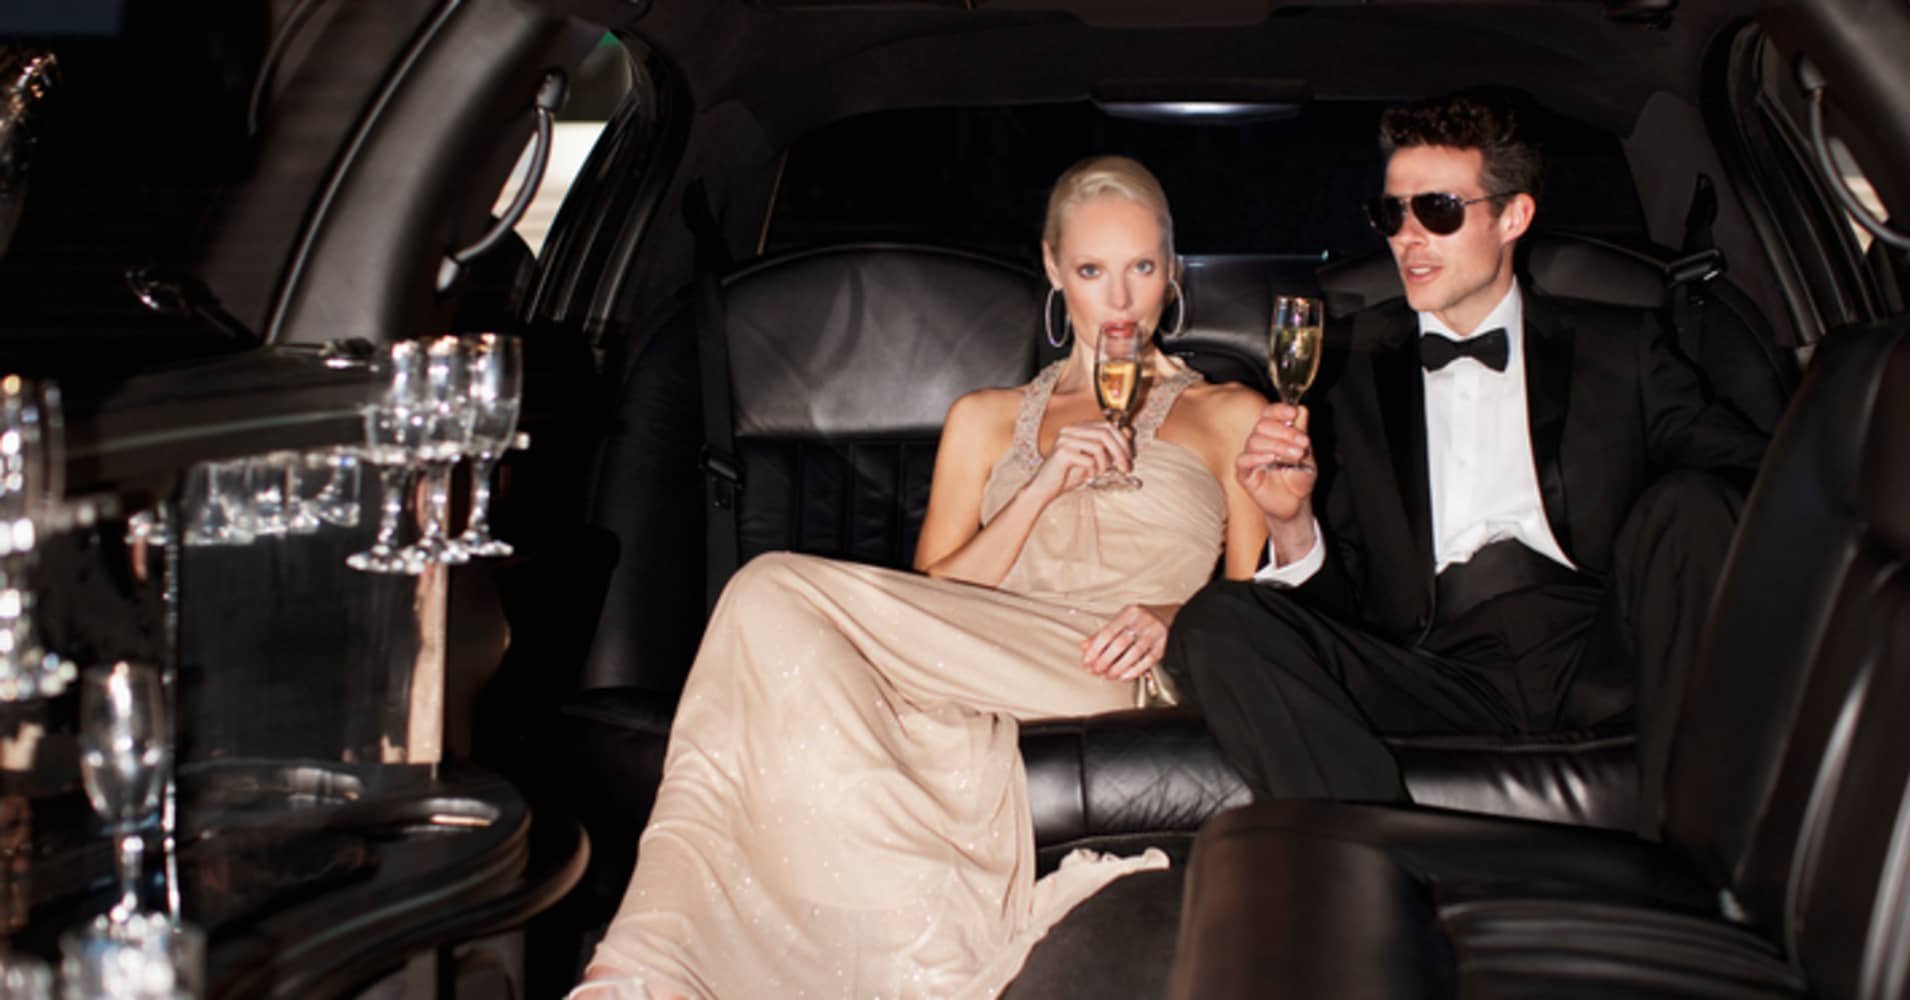 A Record Number Of Americans Are Now Millionaires, New